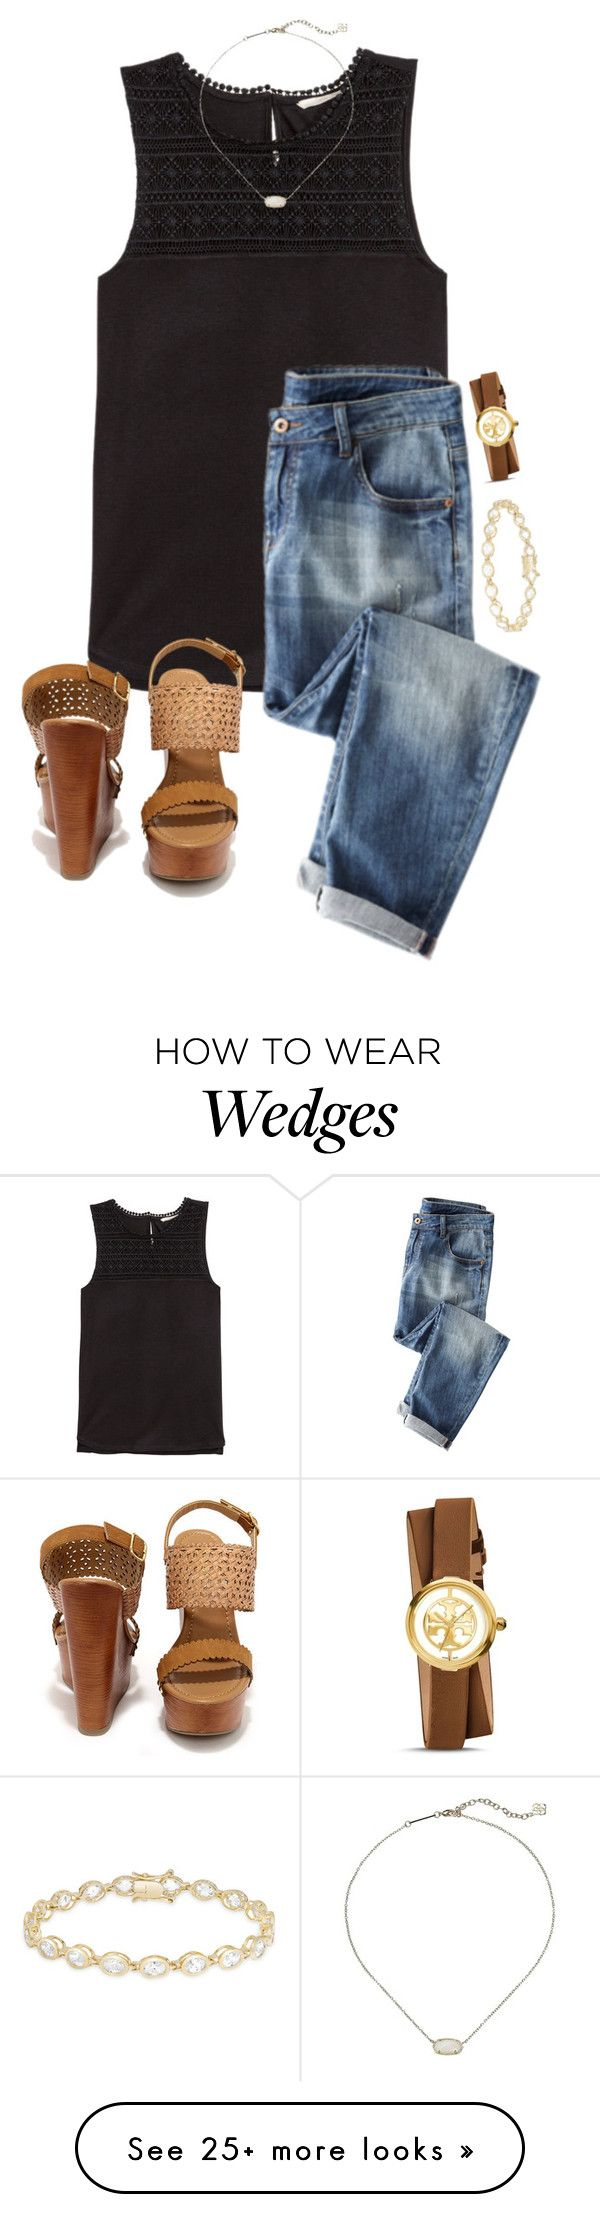 "http://www.sweatertrends.com/category/kendra-scott/ ""Untitled #484"" by lydia-hh on Polyvore featuring H&M, Dolce Giavonna, Soda, Tory Burch and Kendra Scott"